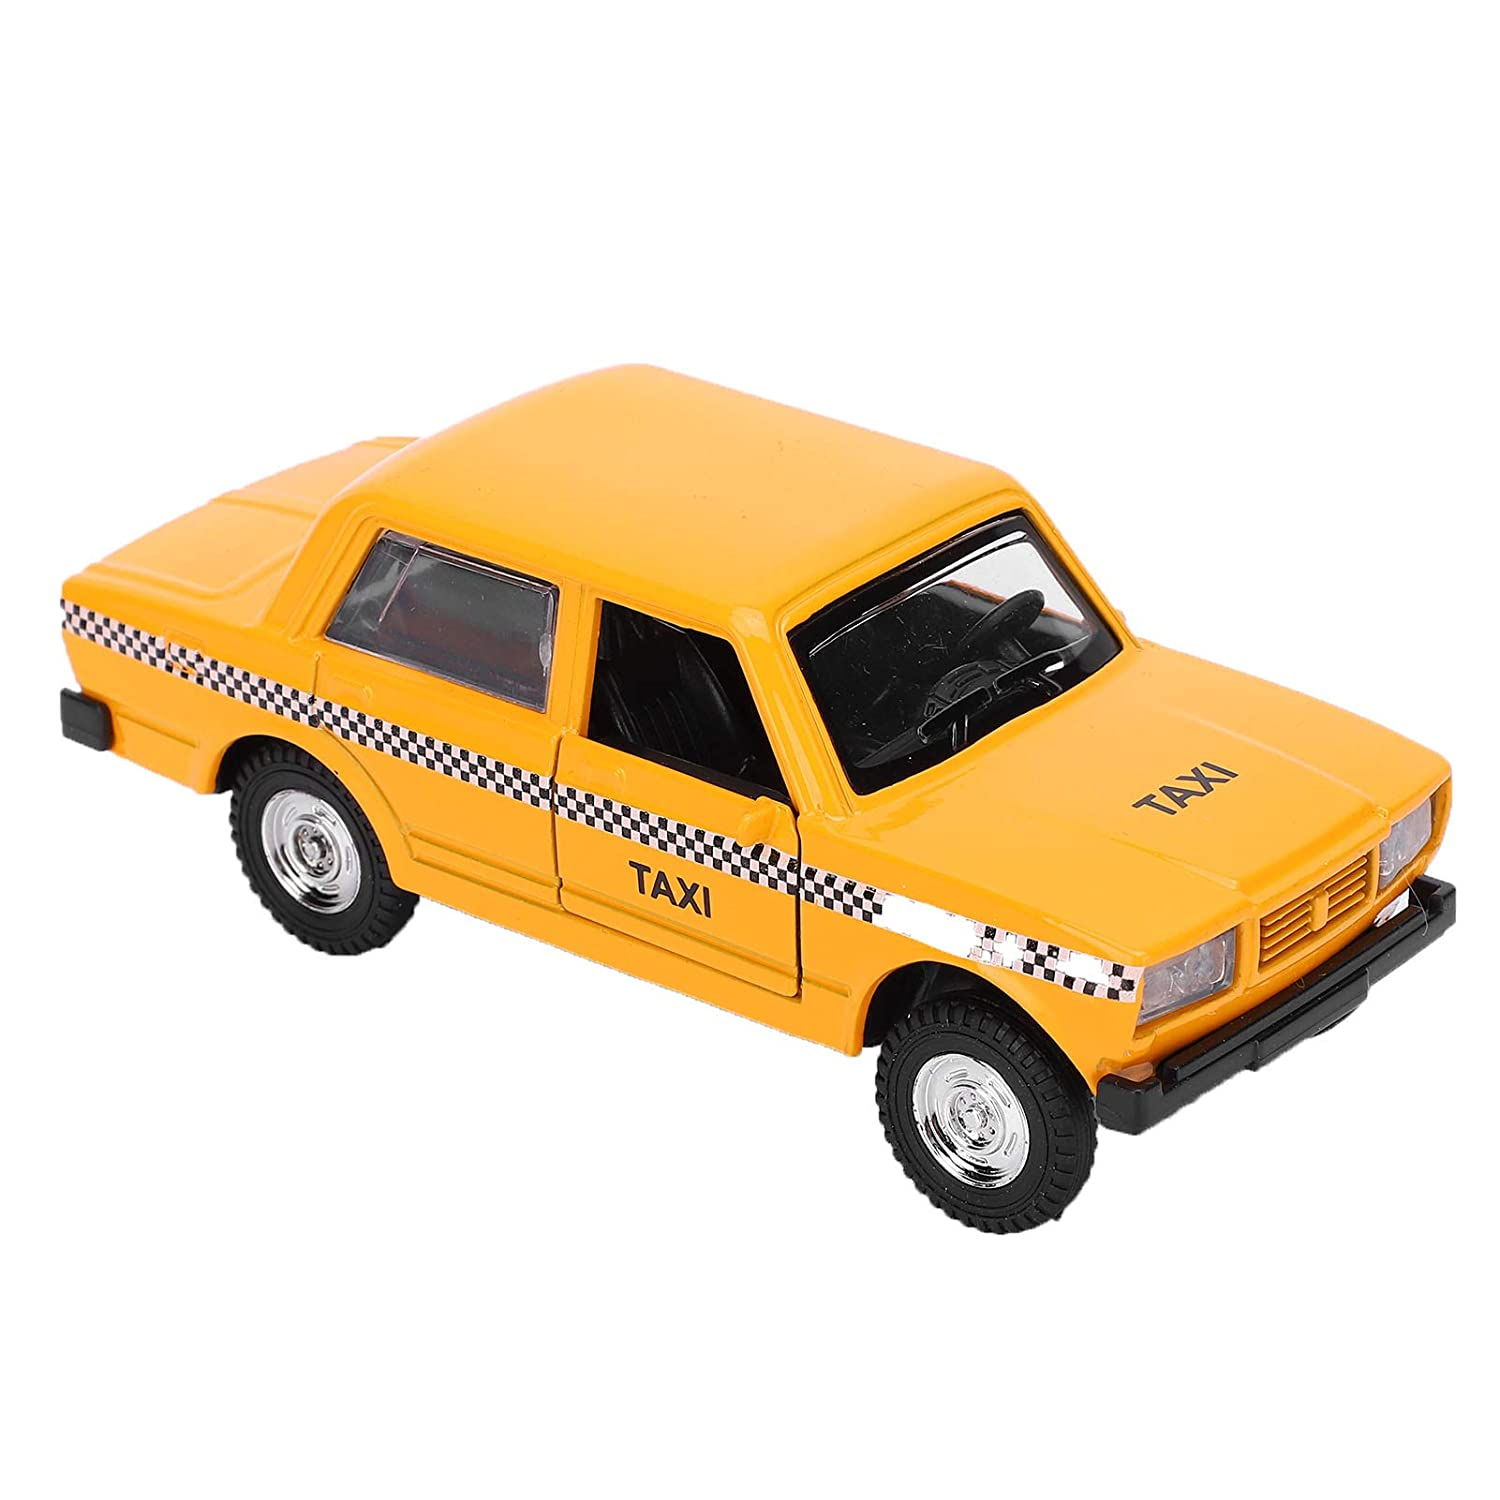 Taxi Special price Model Resistant Fall High Simulation Indefinitely Ki Alloy Toy for Car